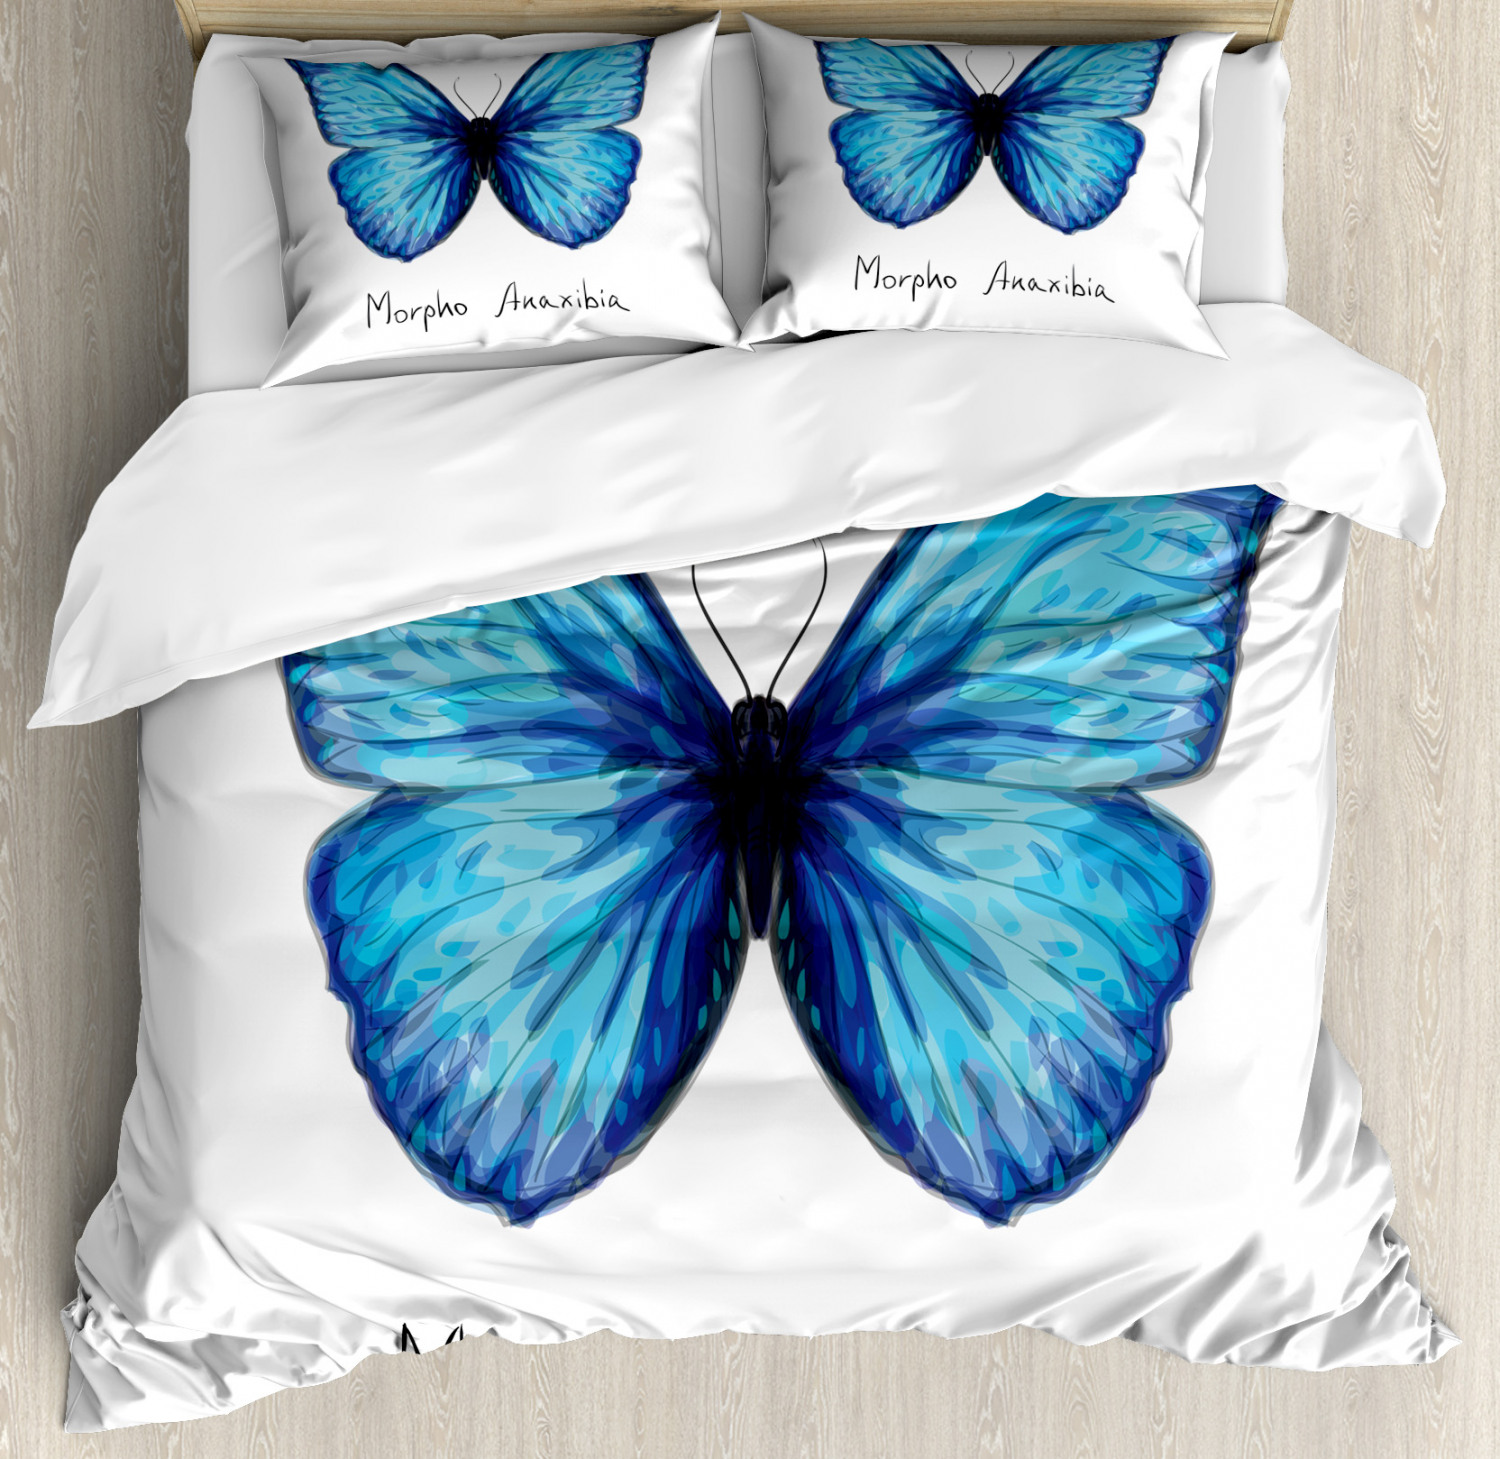 butterfly queen size duvet cover set watercolor style abstract butterfly figure in iridescent colors decorative 3 piece bedding set with 2 pillow